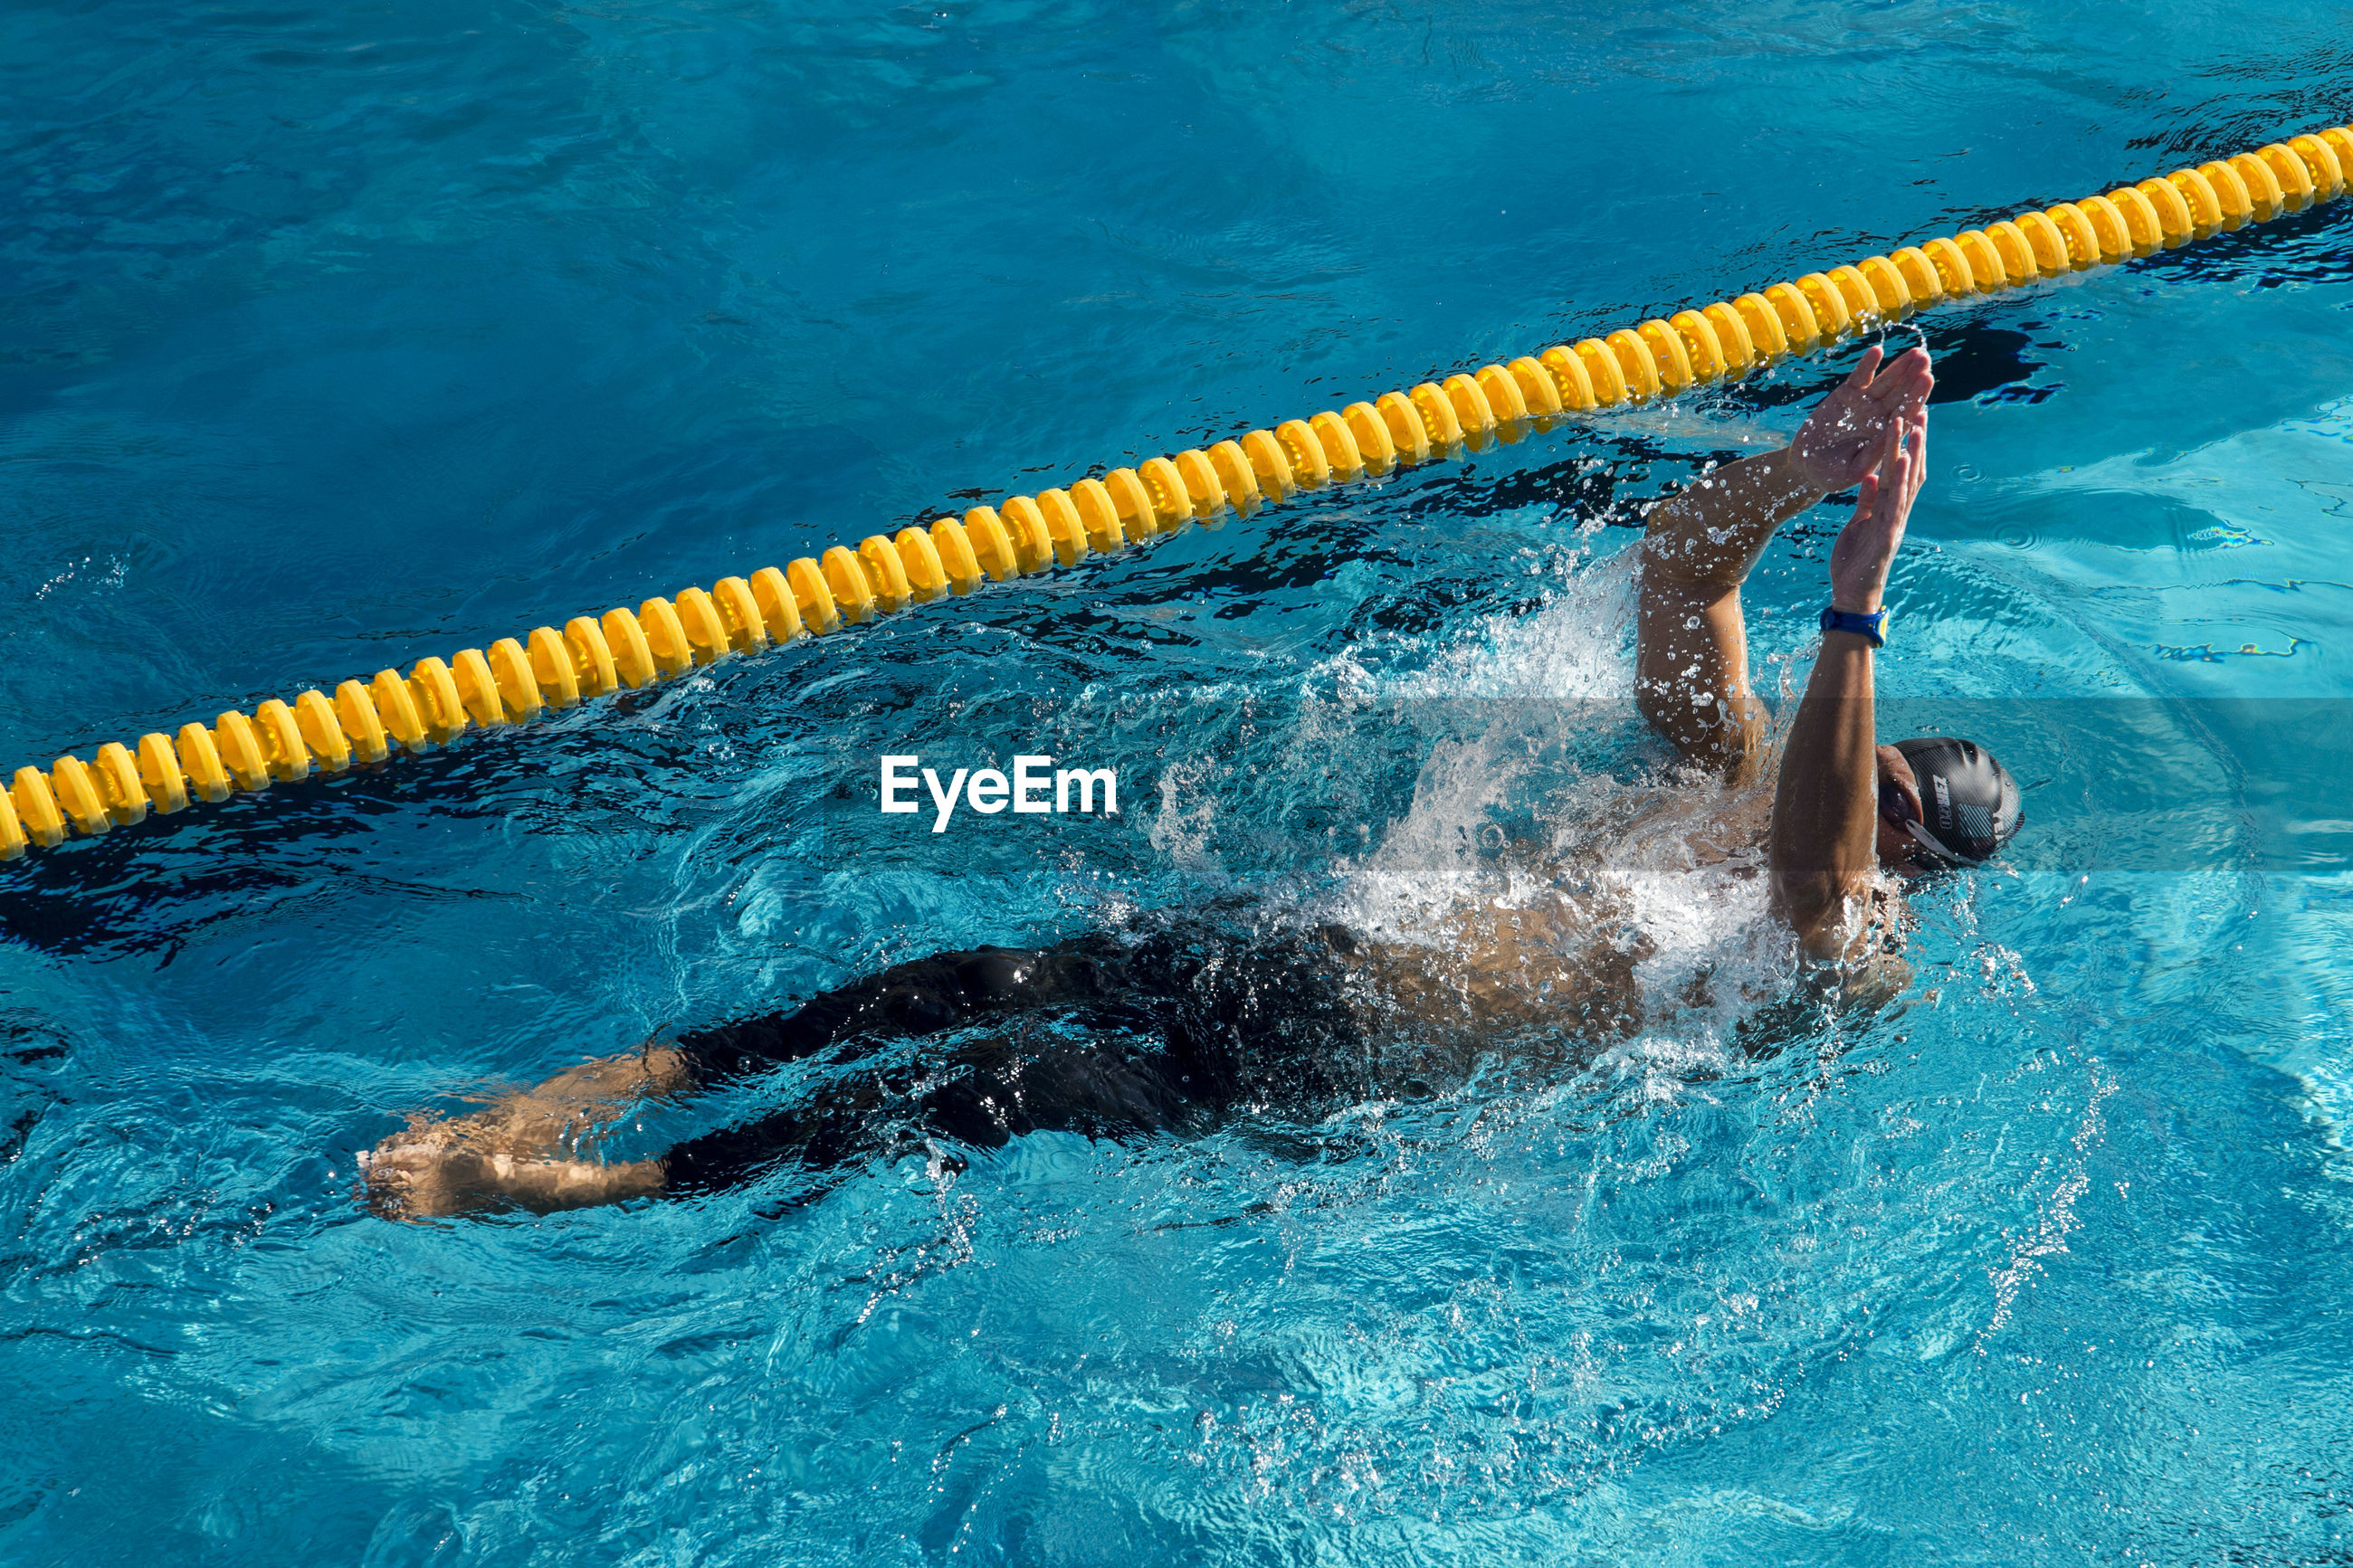 HIGH ANGLE VIEW OF SWIMMING UNDERWATER IN POOL